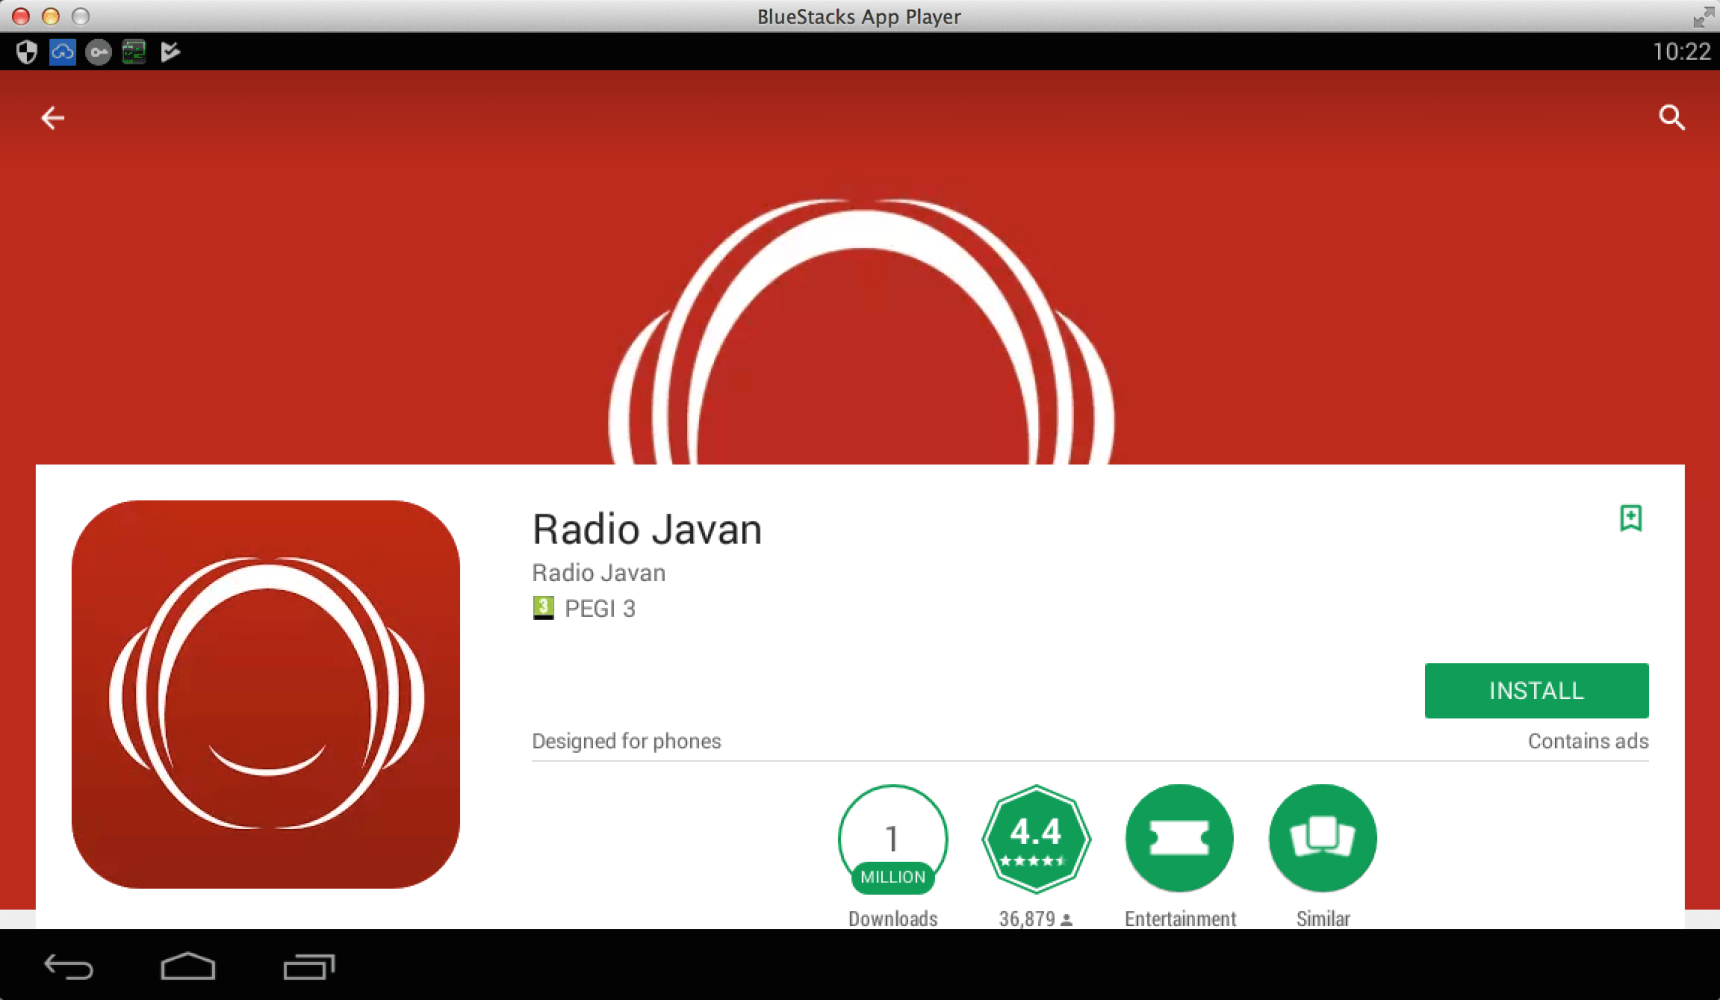 Free download and install Radio Javan on your PC running Windows or